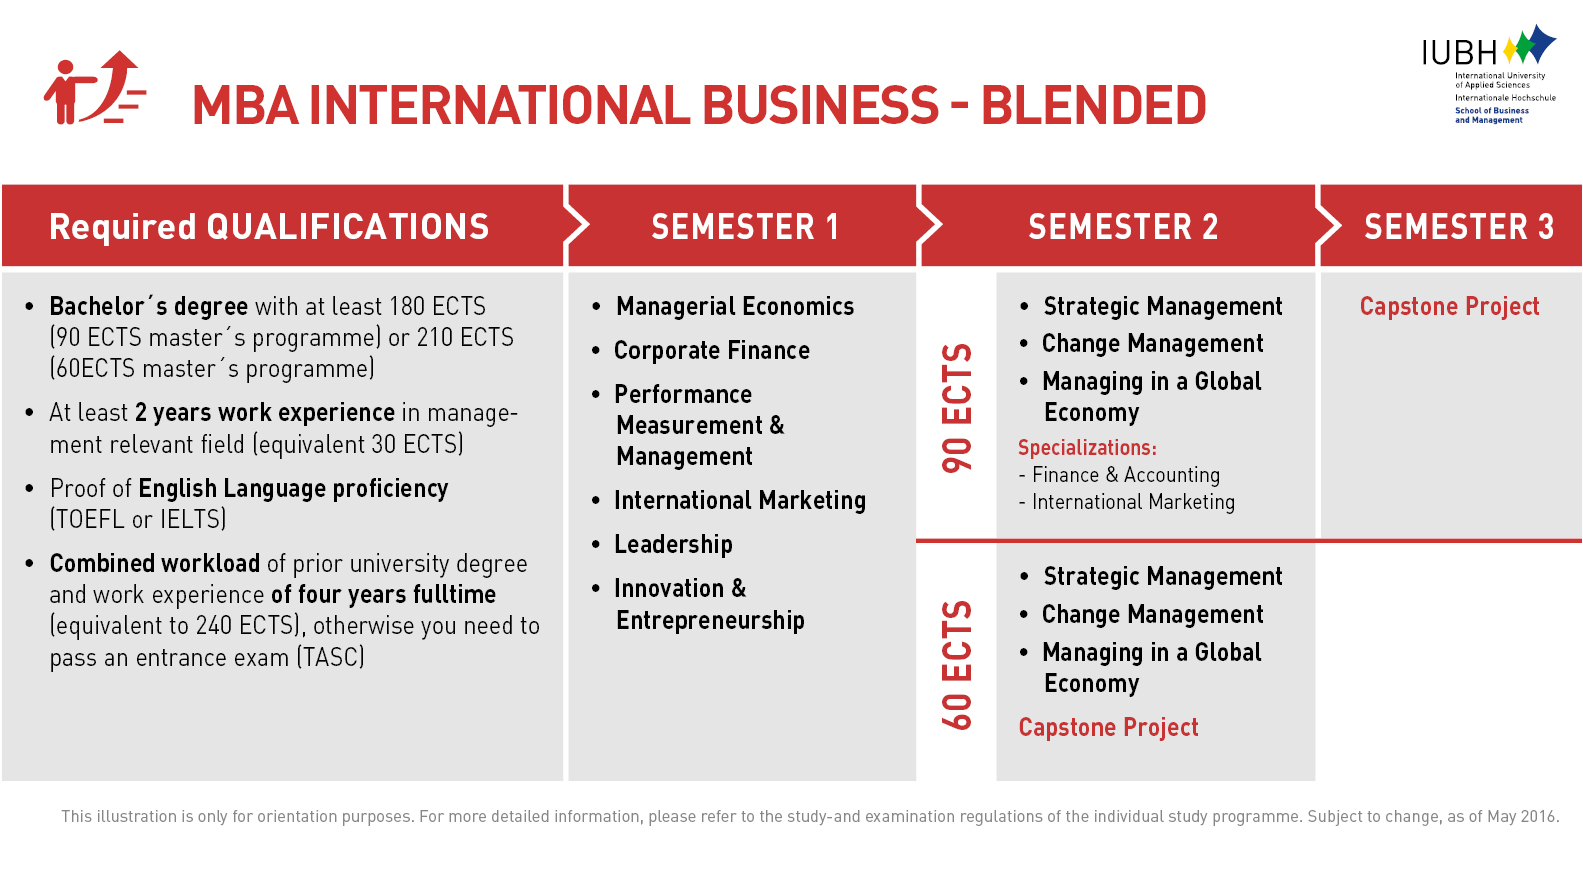 cemexcase international strategic management Cemex case international business university rijksuniversiteit groningen cemex has quickly expanded internationally at first they have been mainly active in the latin the key advantage of forming a strategic alliance is to share risks and costs , learn from.